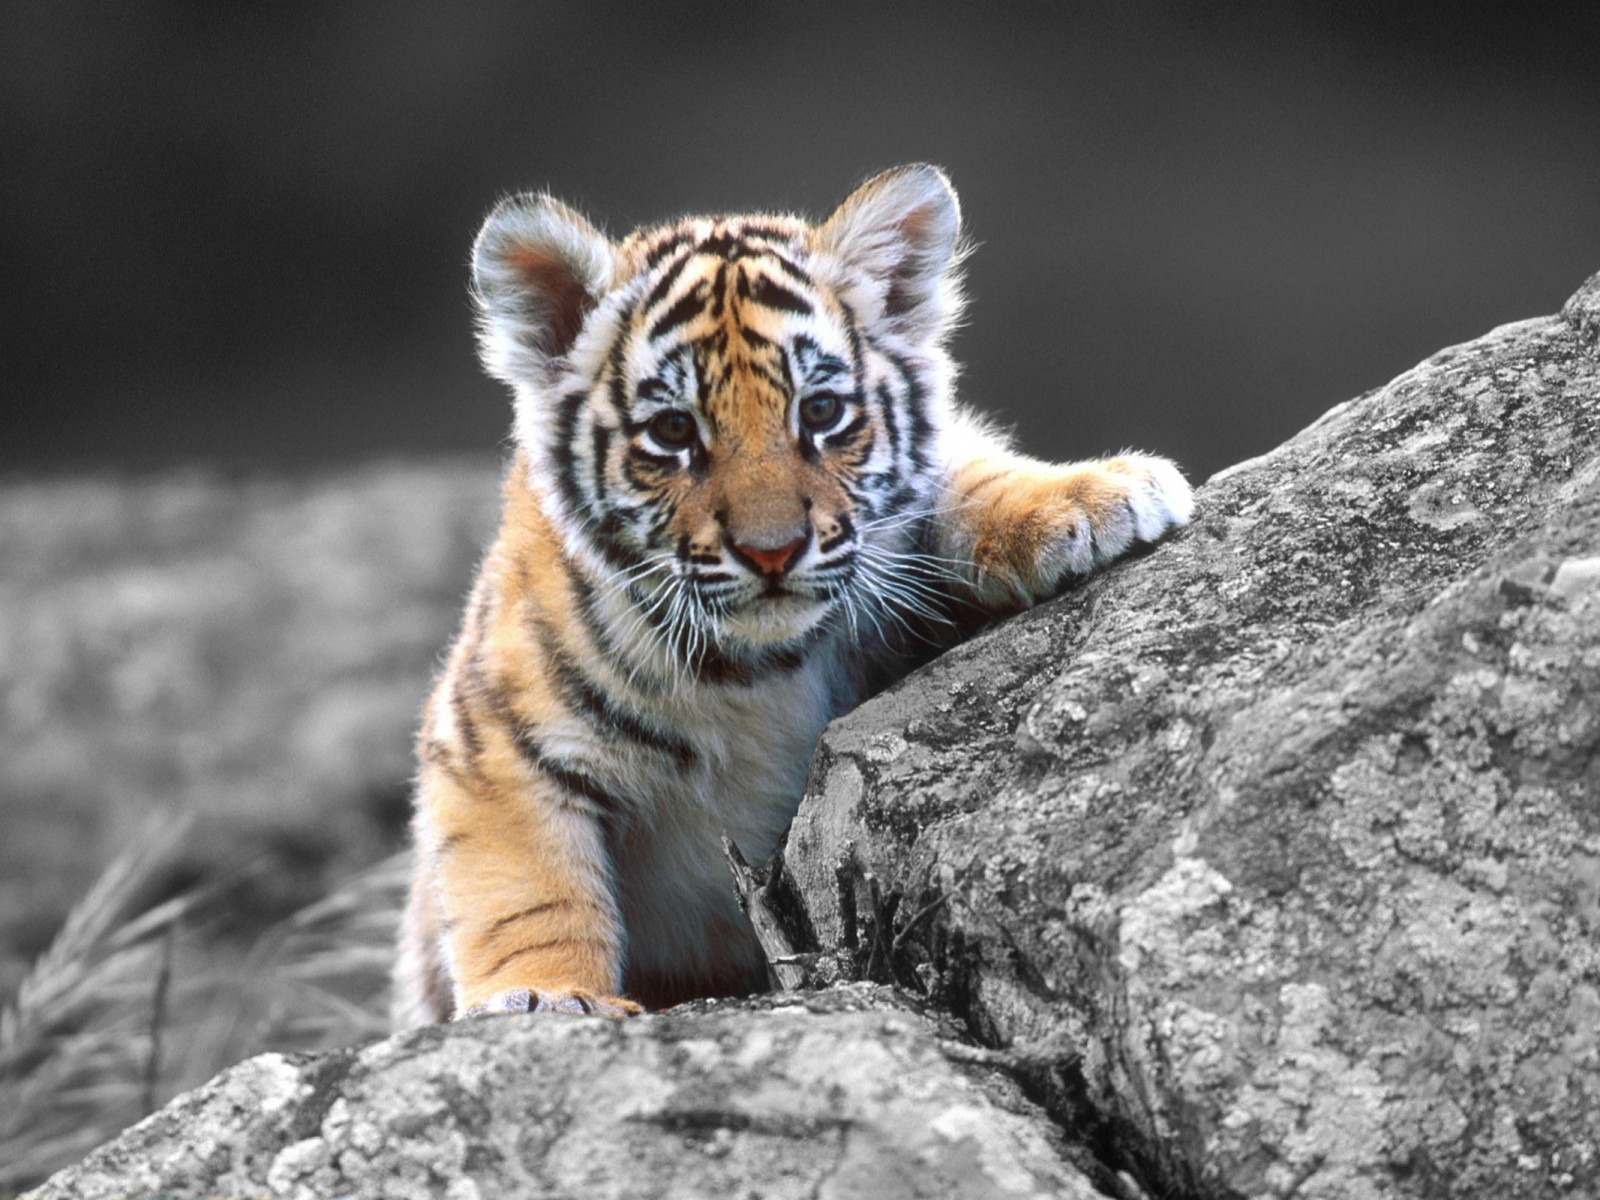 CXB : Baby Tiger Pictures, 44 Wallpapers of Baby Tiger High Resolution